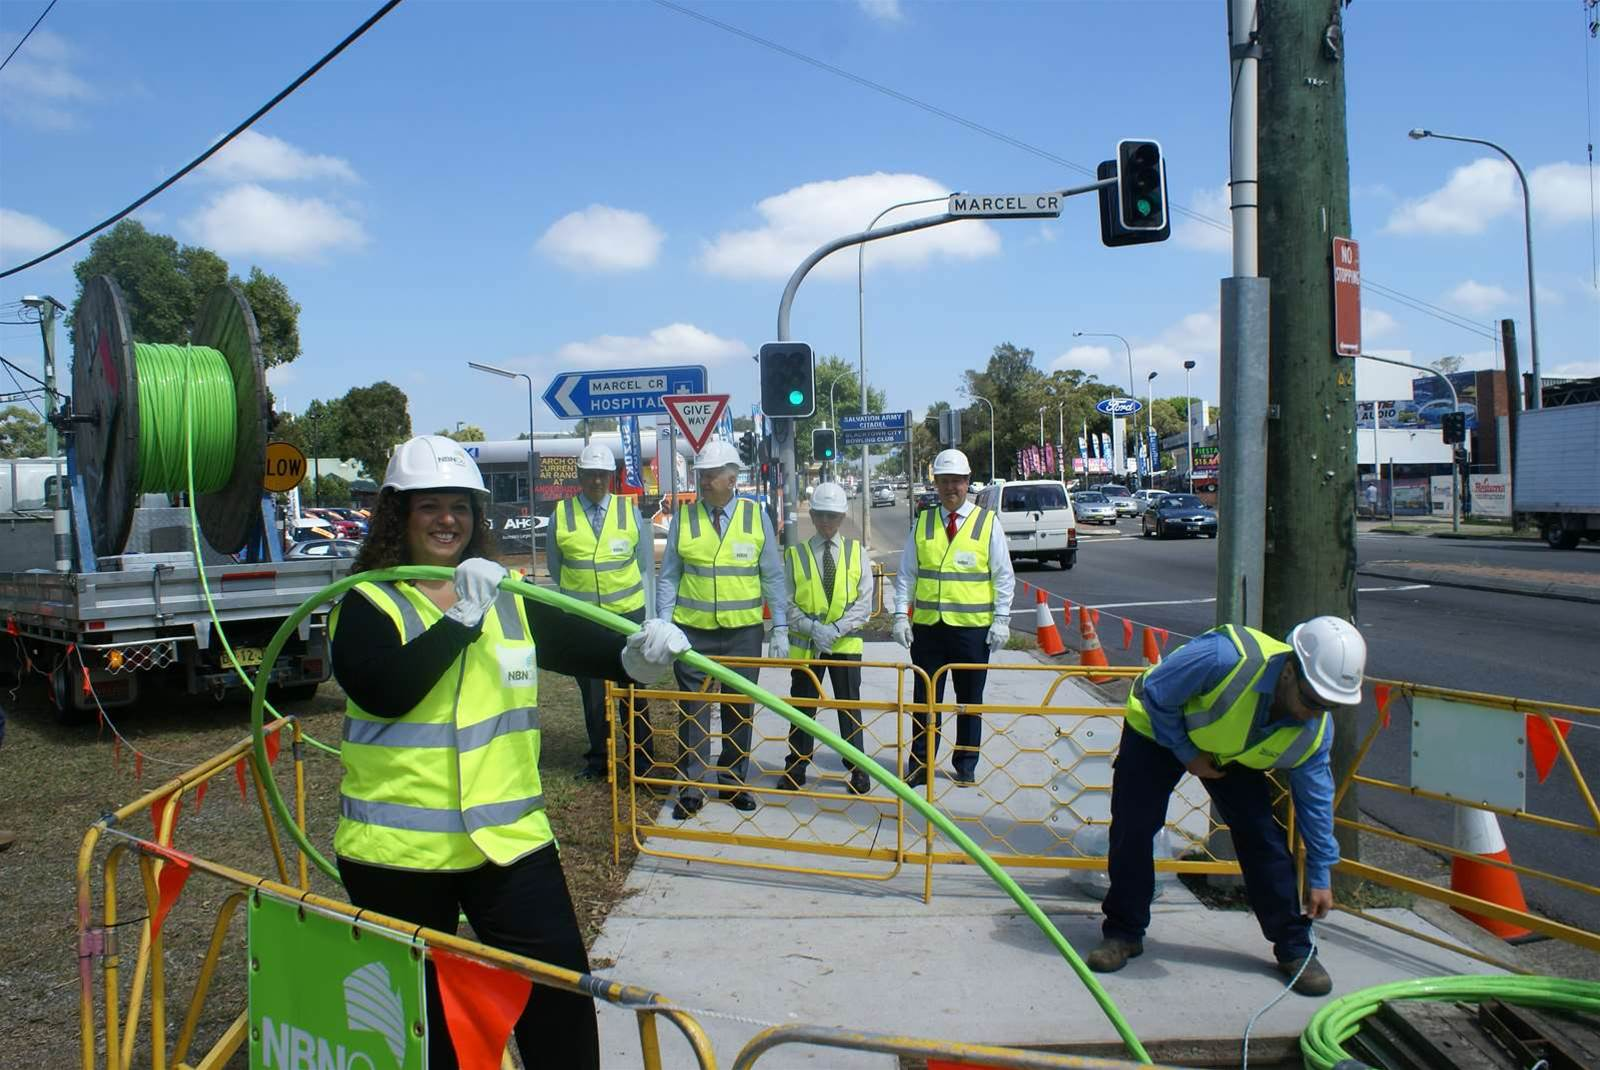 NBN arrives in Western Sydney